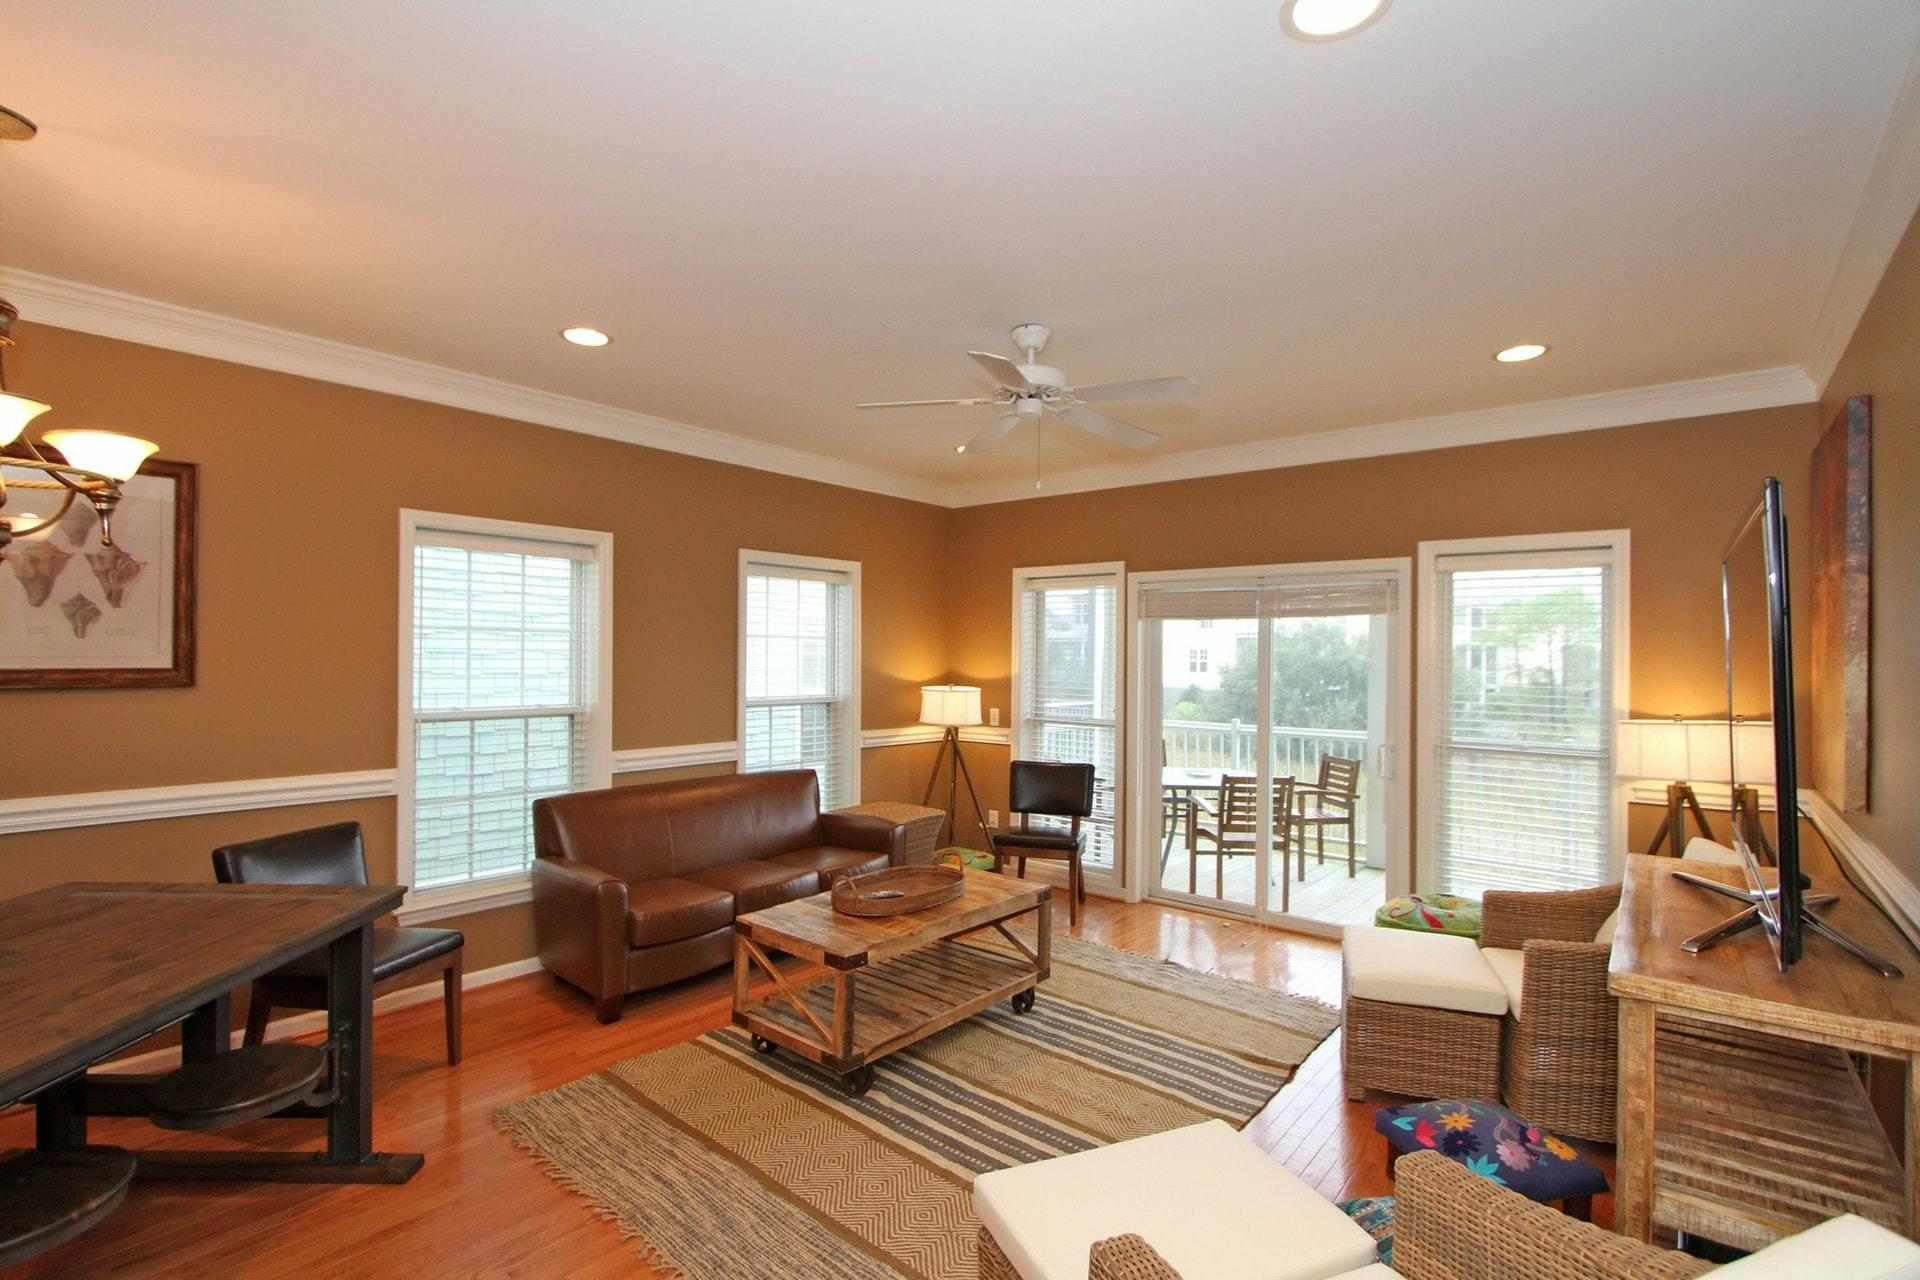 Waters Edge Homes For Sale - 85 2nd, Folly Beach, SC - 12